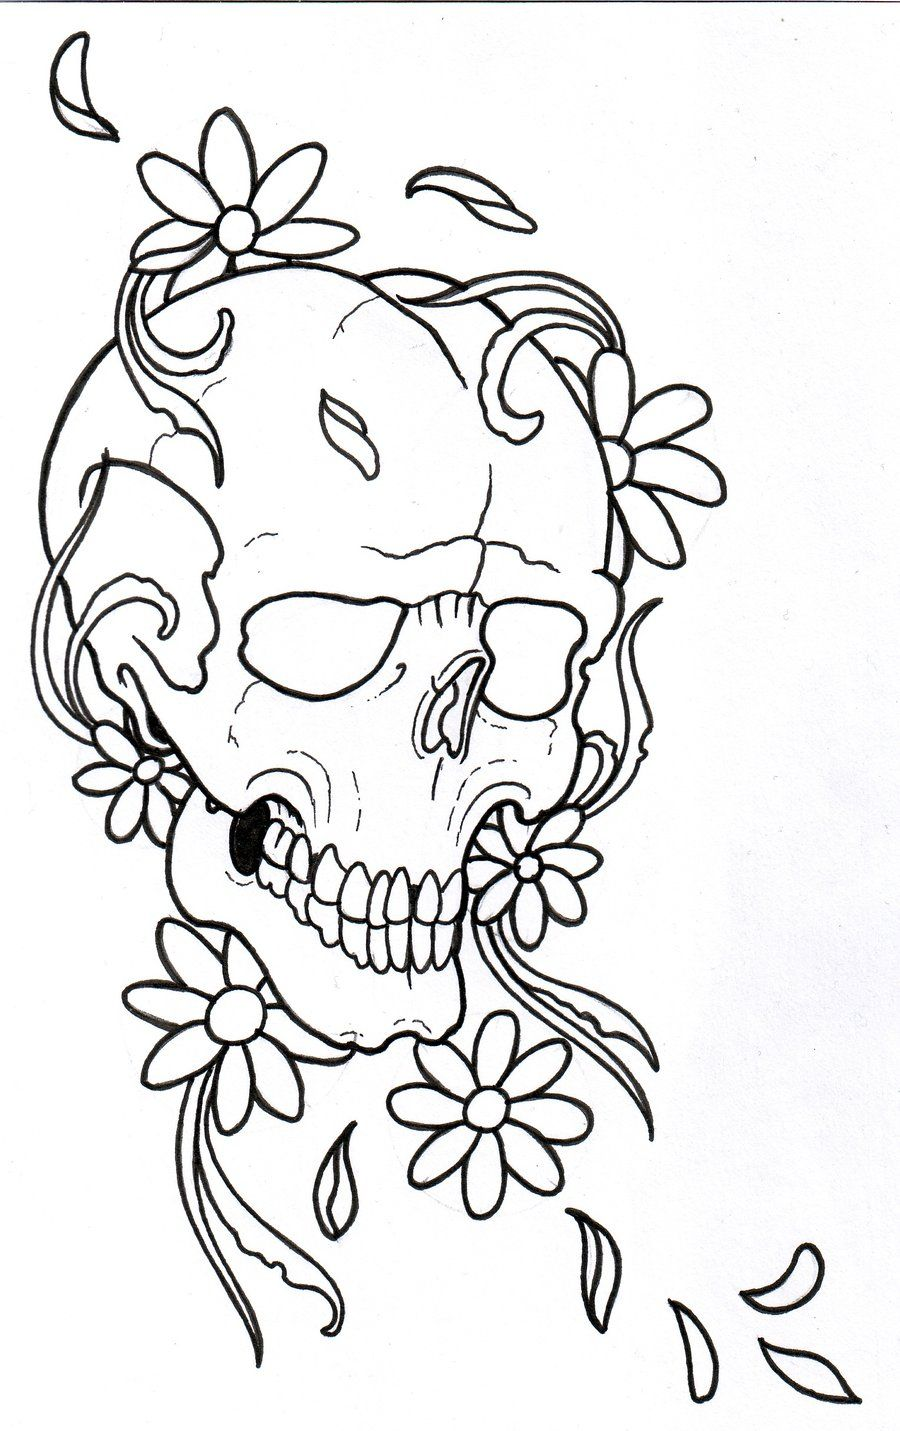 Tattoo Outlines Flowers Black And White: Tattoo Flower Outline Flower Outline Drawing